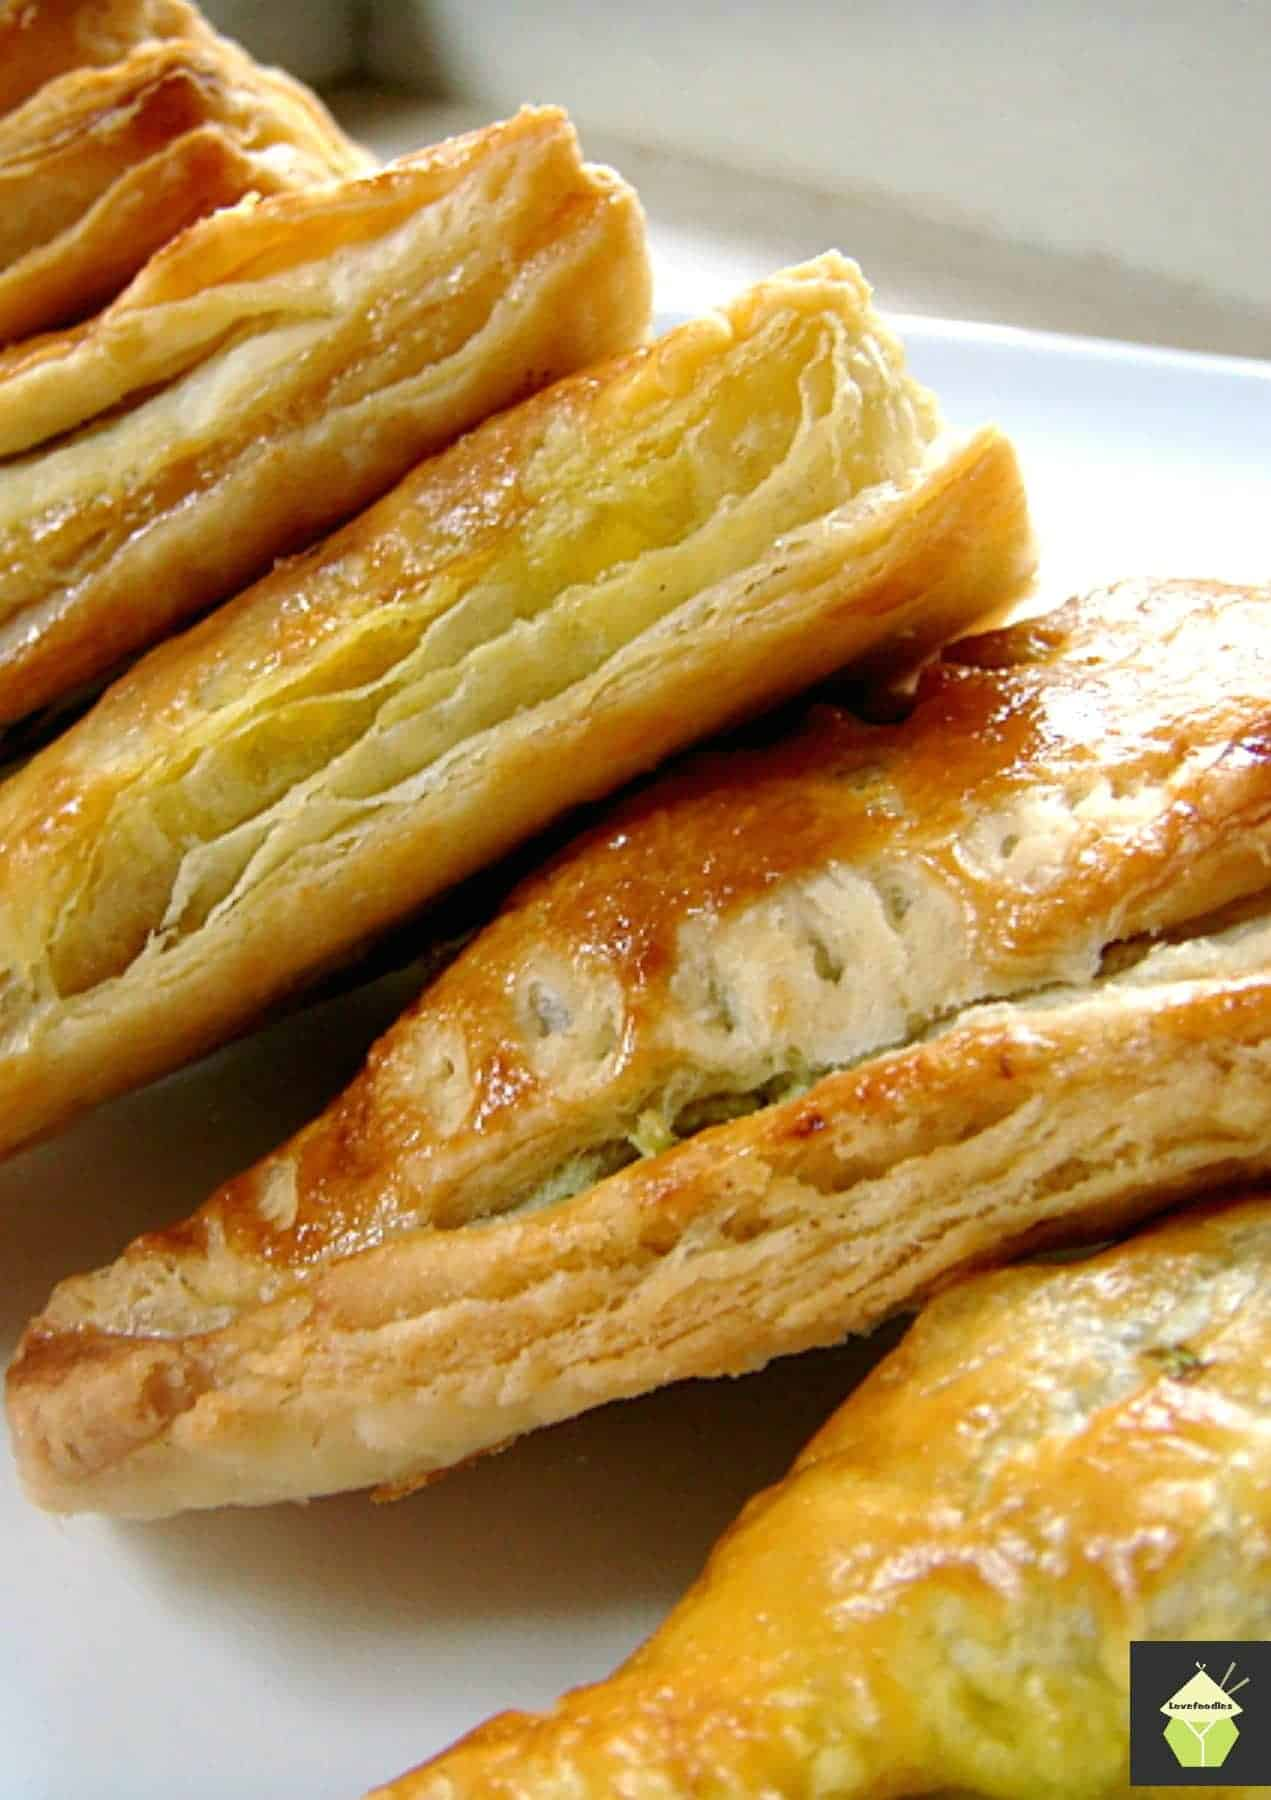 Nanny Chan's Mild Curry Puffs with a delicous mild spiced filling of ground meat wrapped in a flaky pastry. Great as a snack, appetizer or party food!